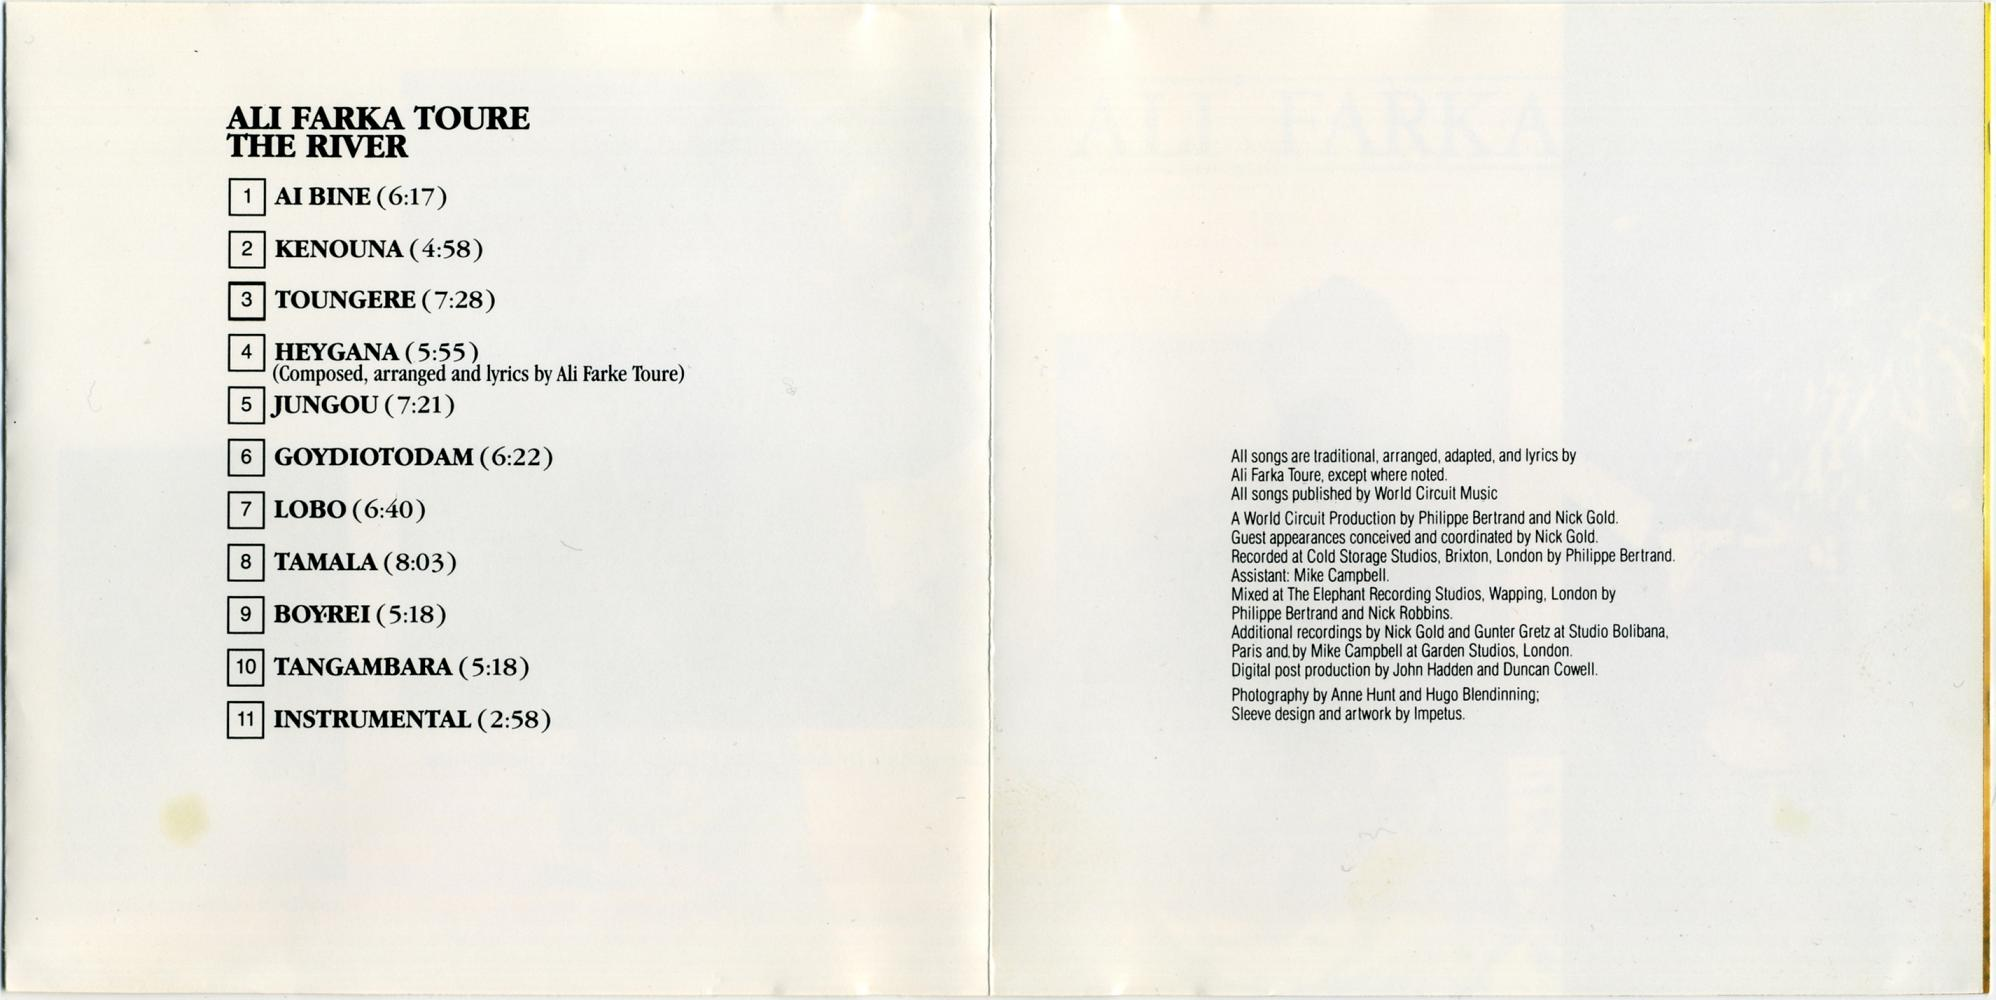 ali farka toure the river liner notes-004